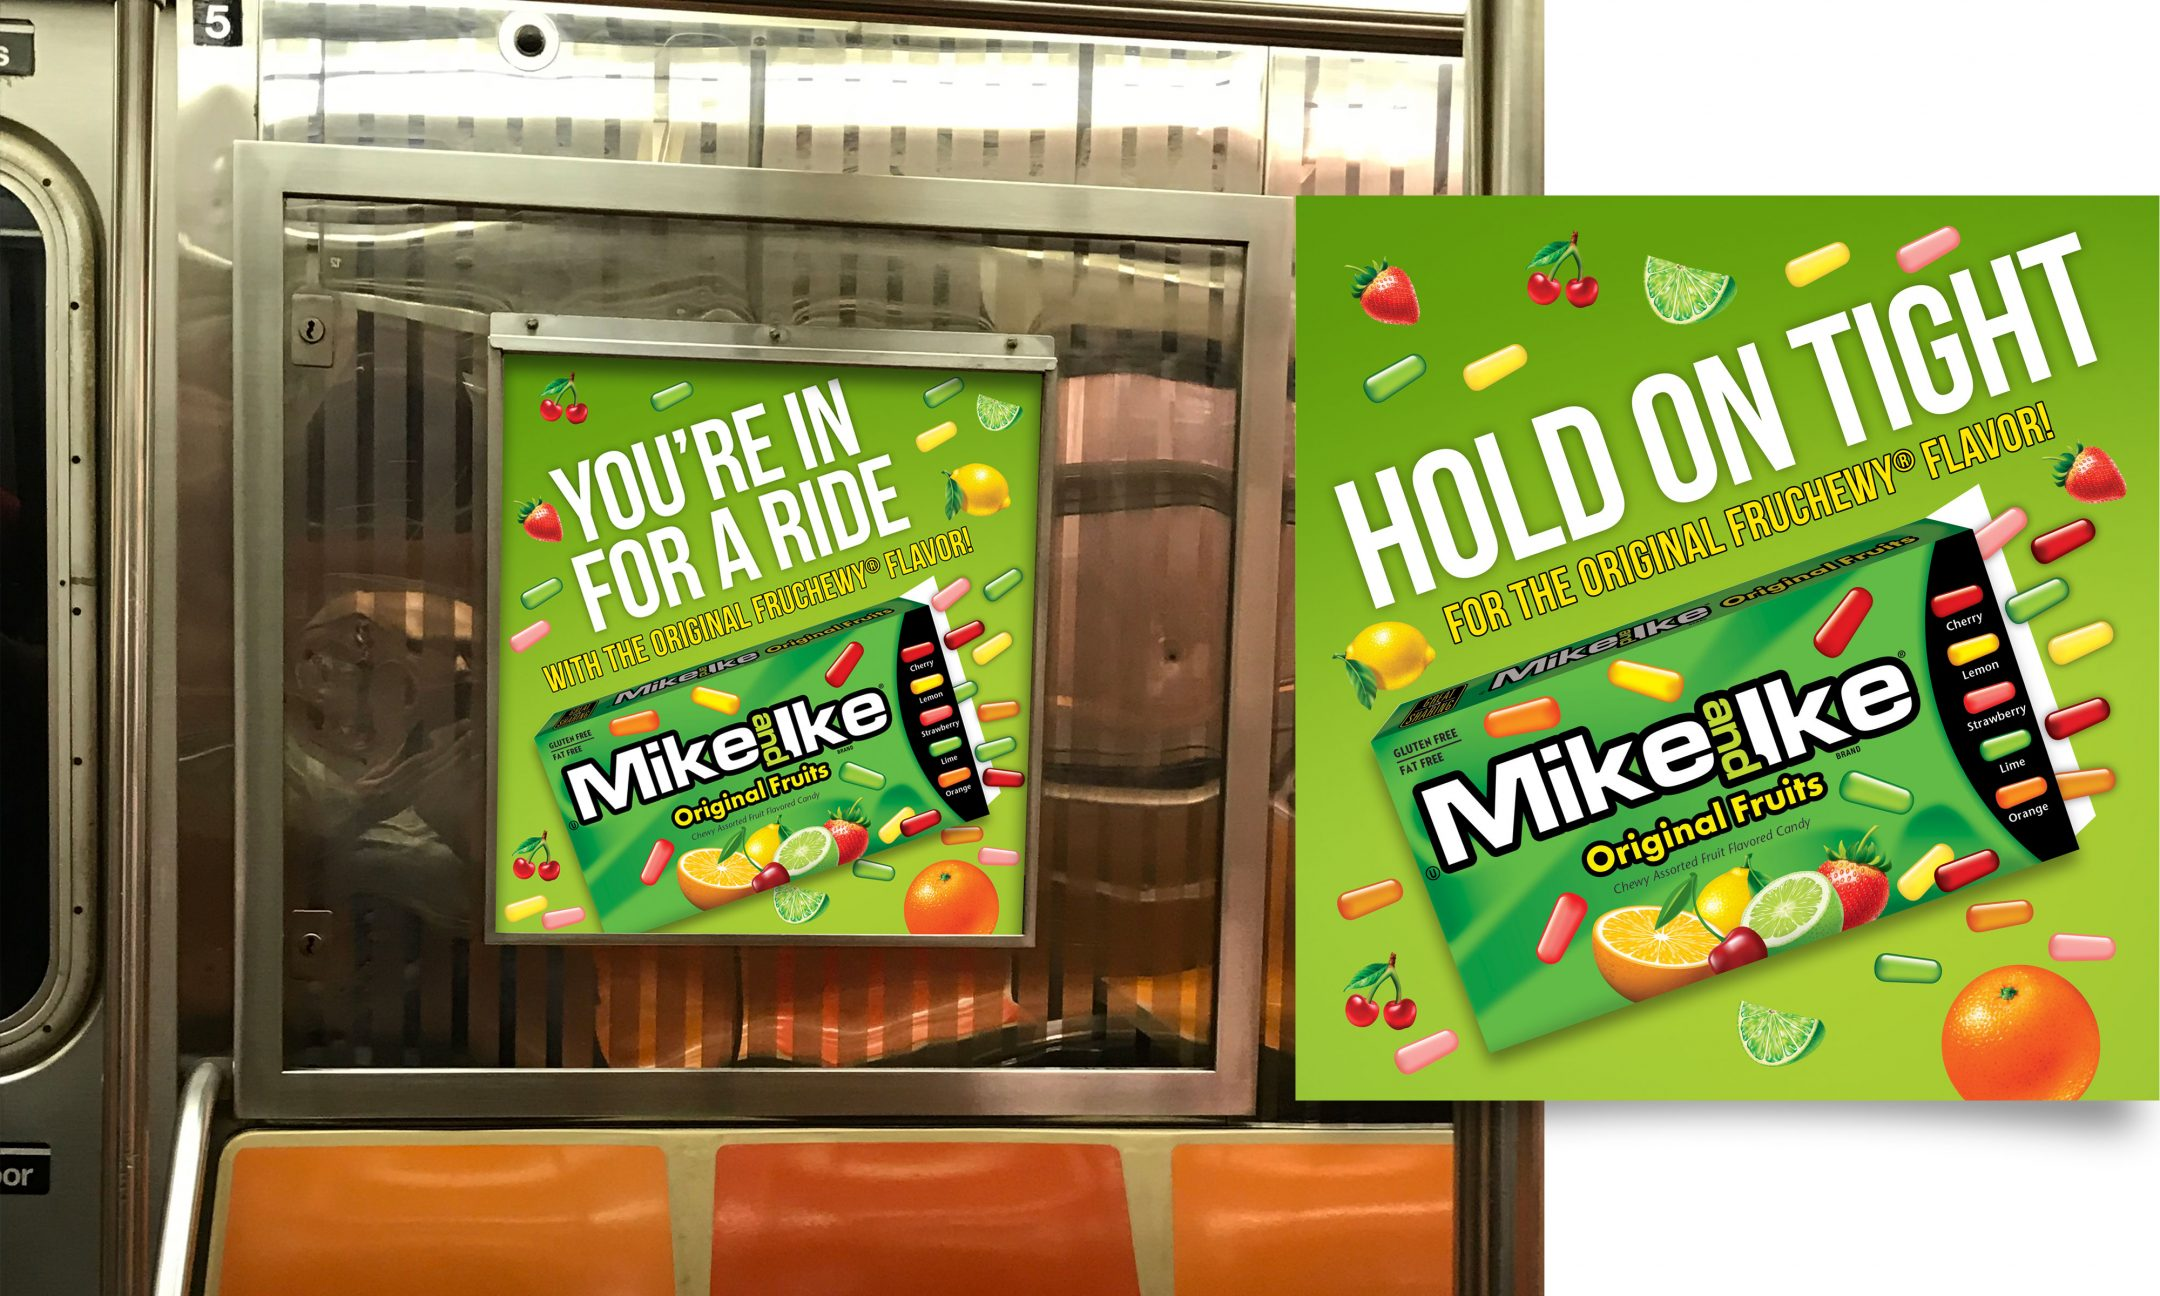 Mike and Ike Original Mix Subway